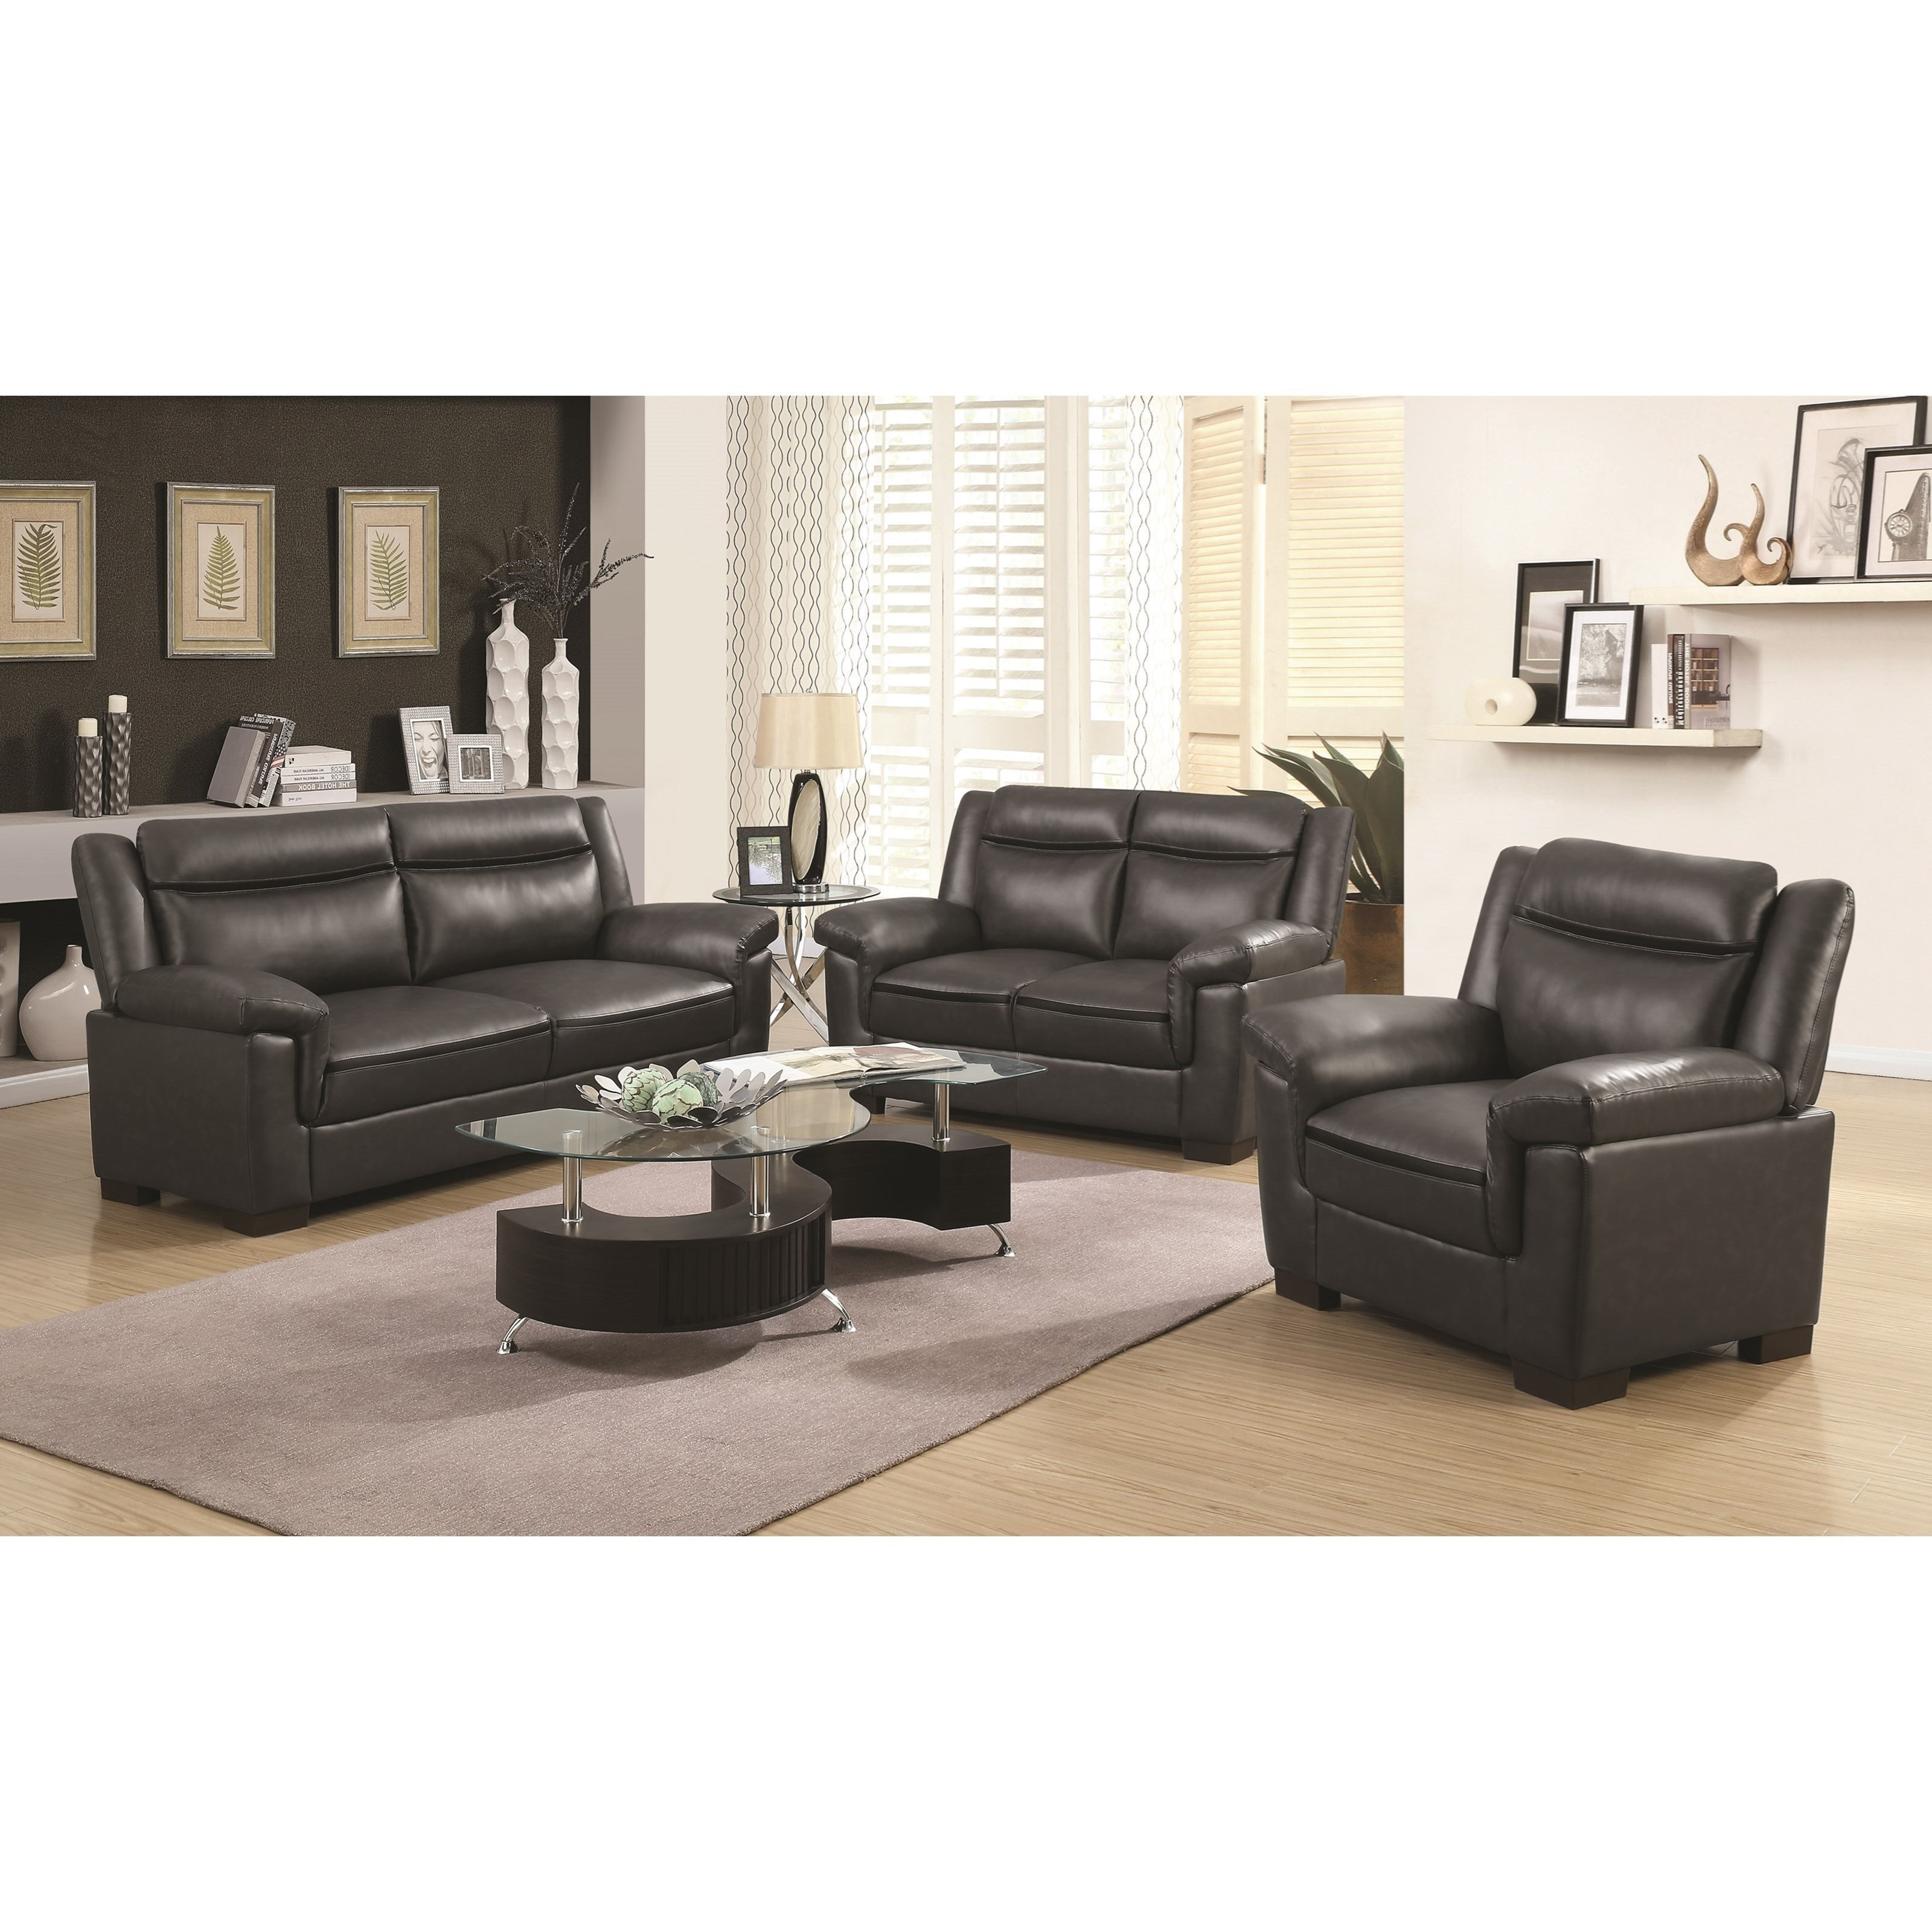 Coaster arabella stationary living room group value city for Living room furniture groups